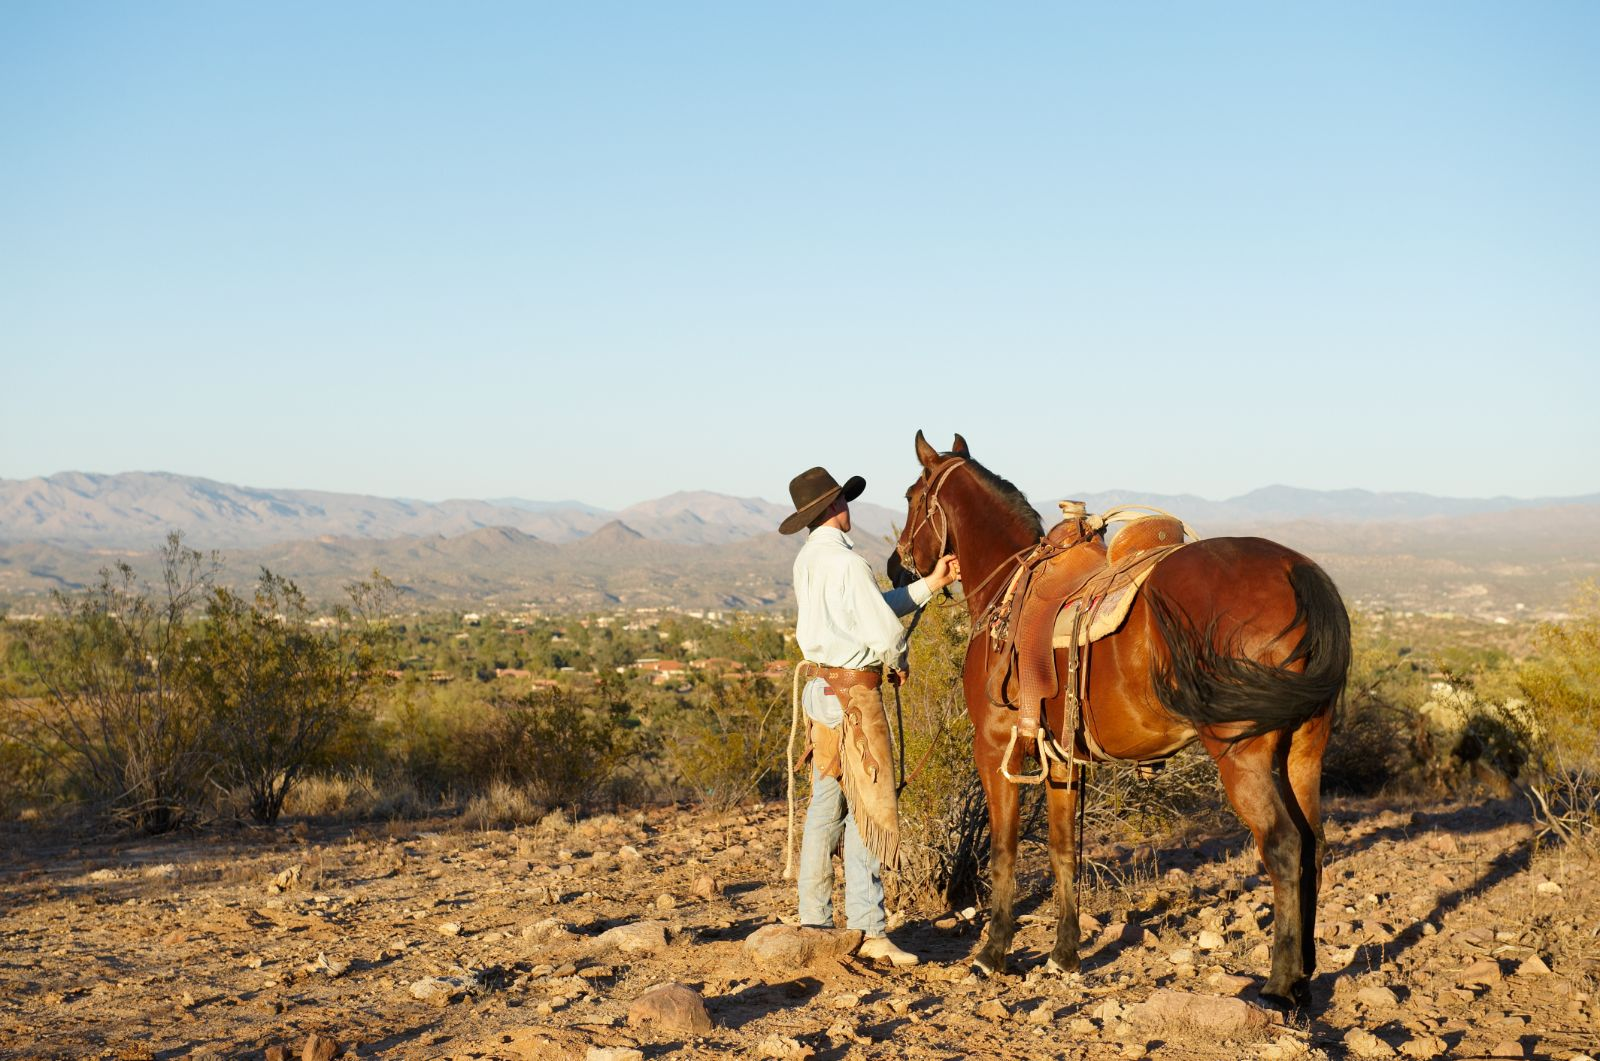 Wrangler at Horsemanship Class at Rancho de los Caballeros